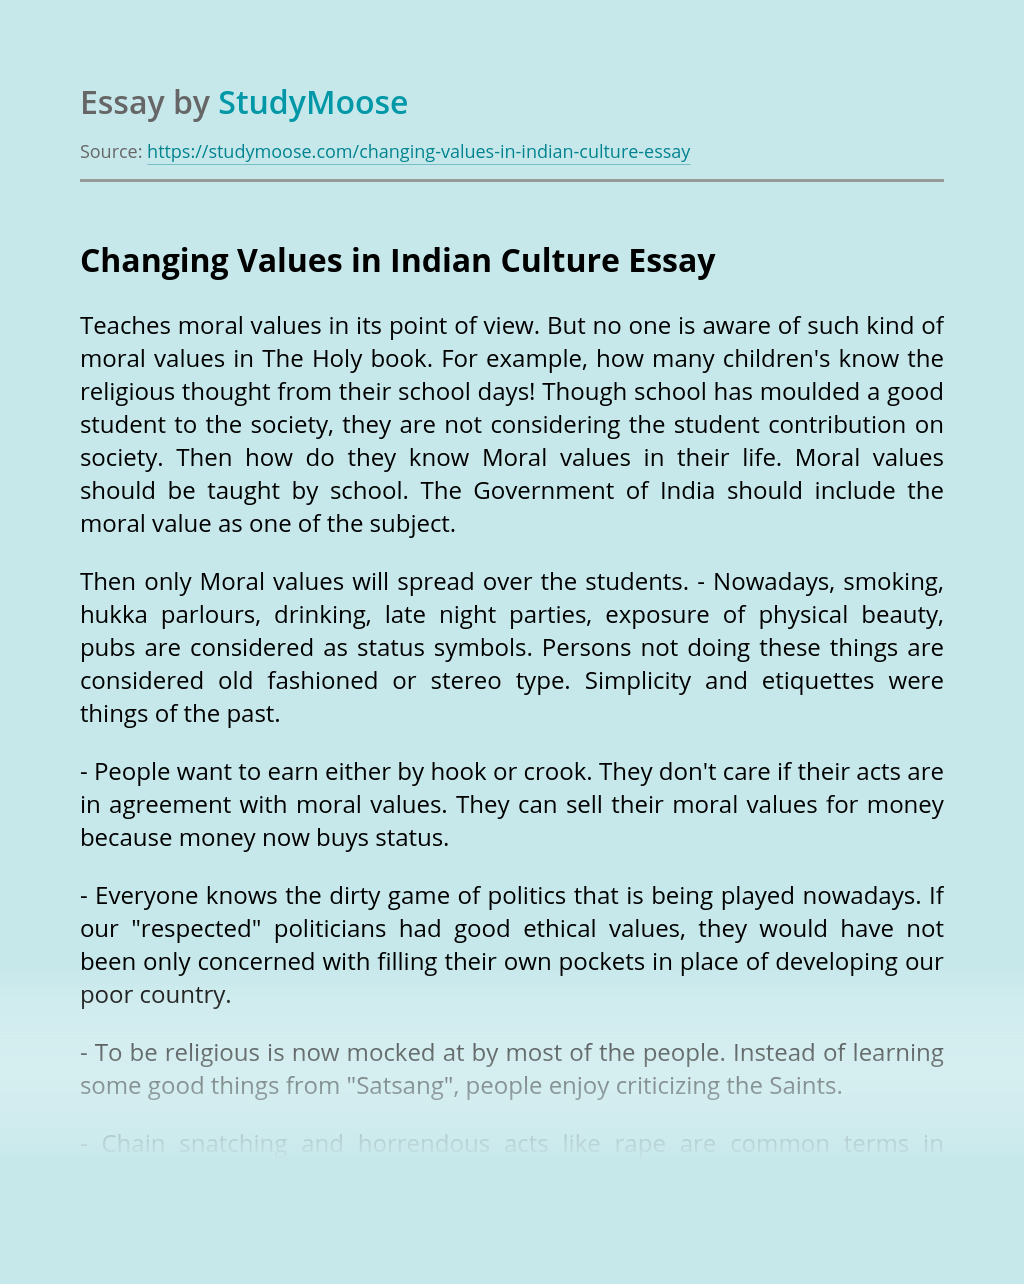 Changing Values in Indian Culture